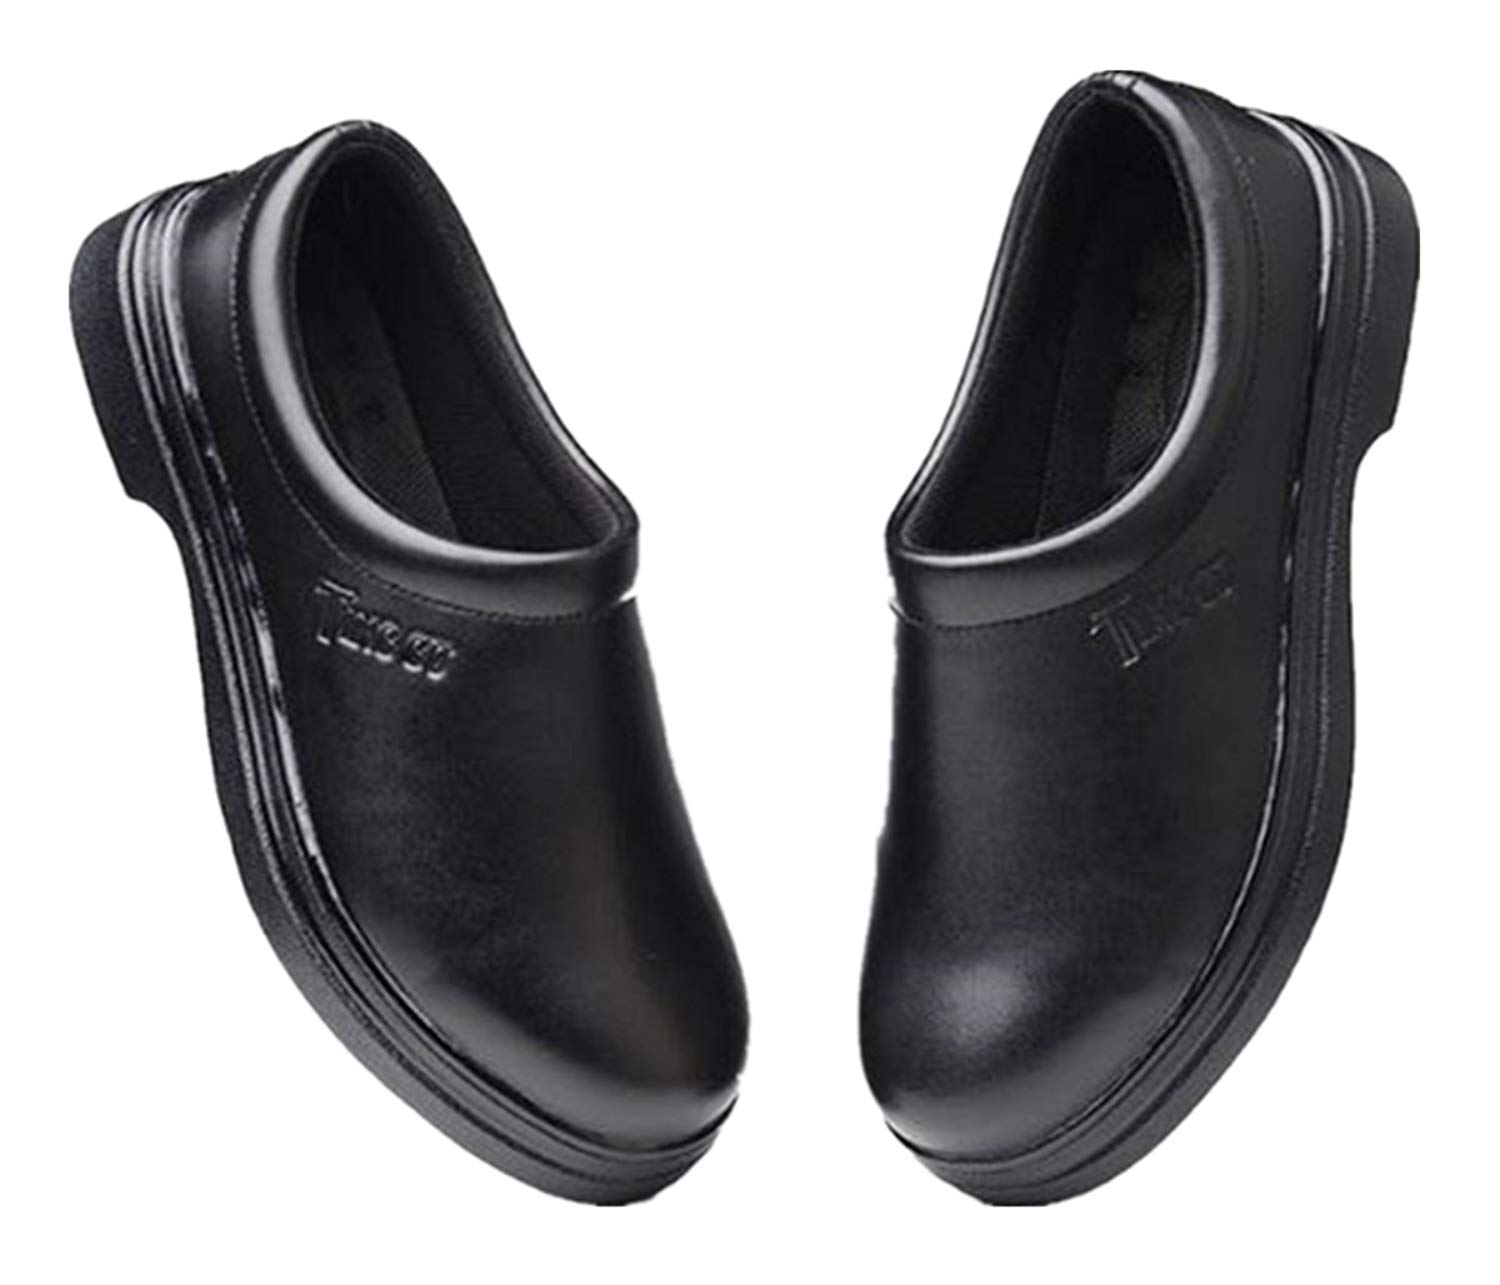 Cheap Restaurant Shoes For Men Find Restaurant Shoes For